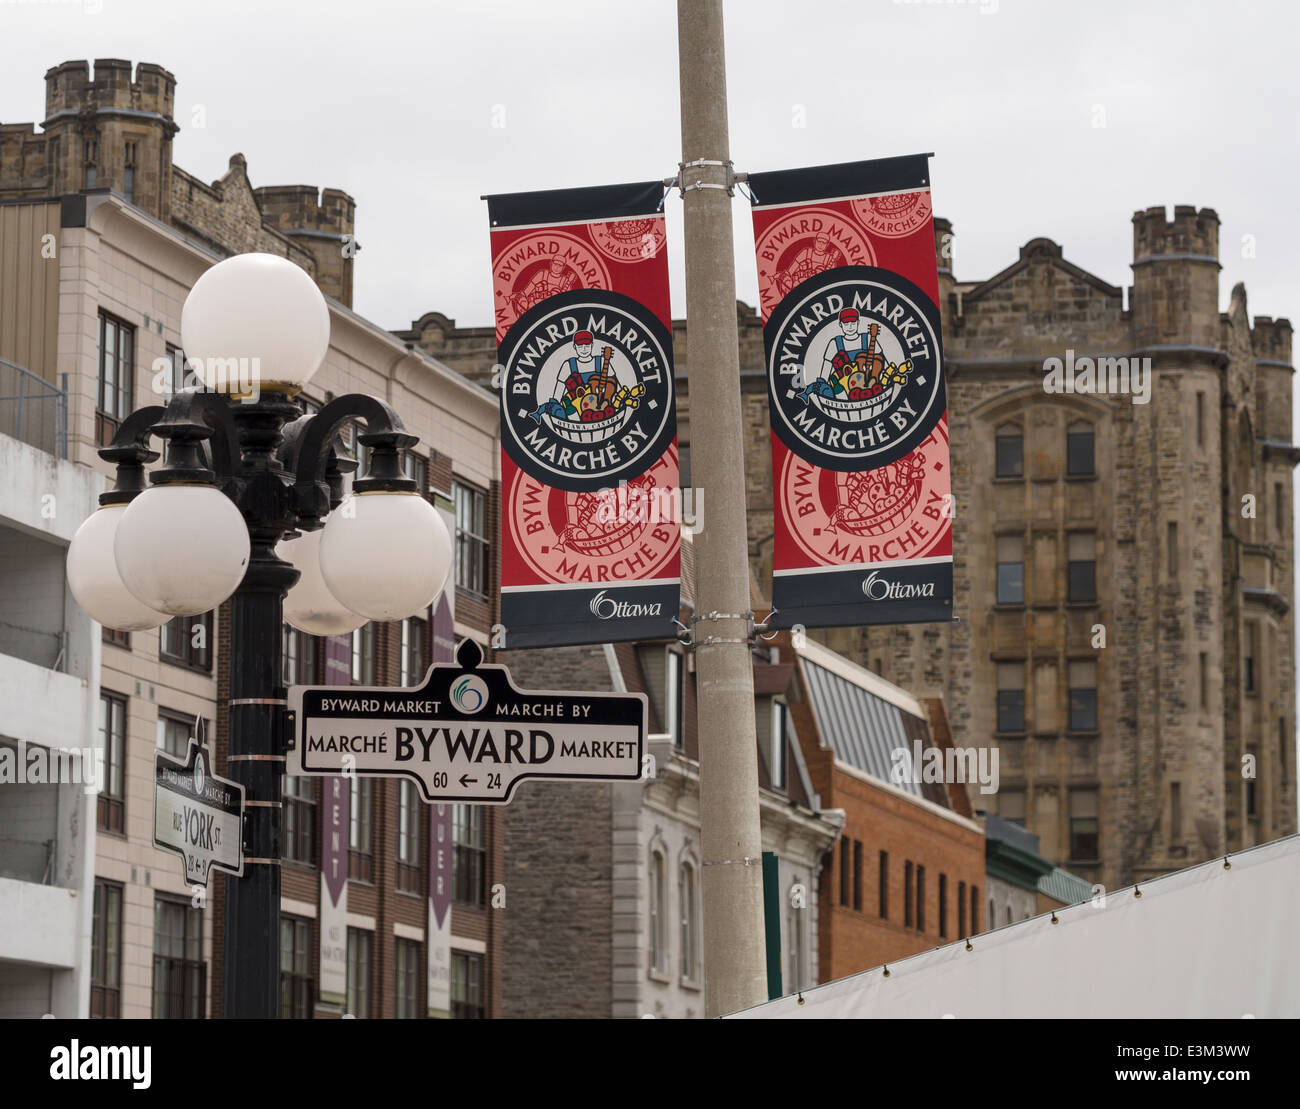 Byward Market banner on a lamp post, Byward Market street sign below. A market banner in the downtown lowertown - Stock Image